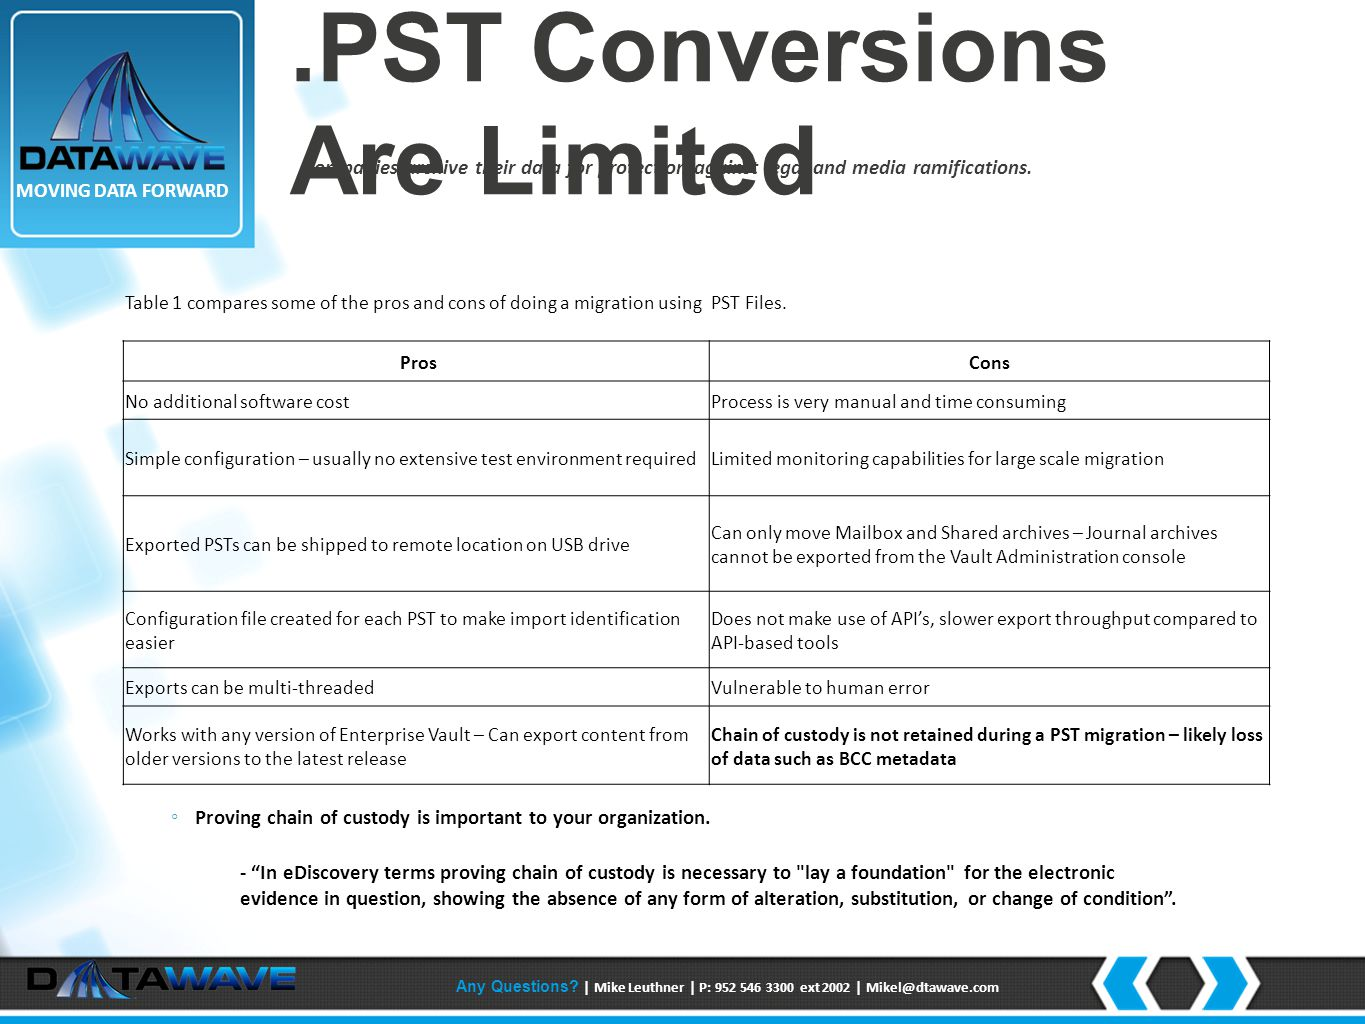 .PST Conversions Are Limited Companies archive their data for protection against legal and media ramifications.